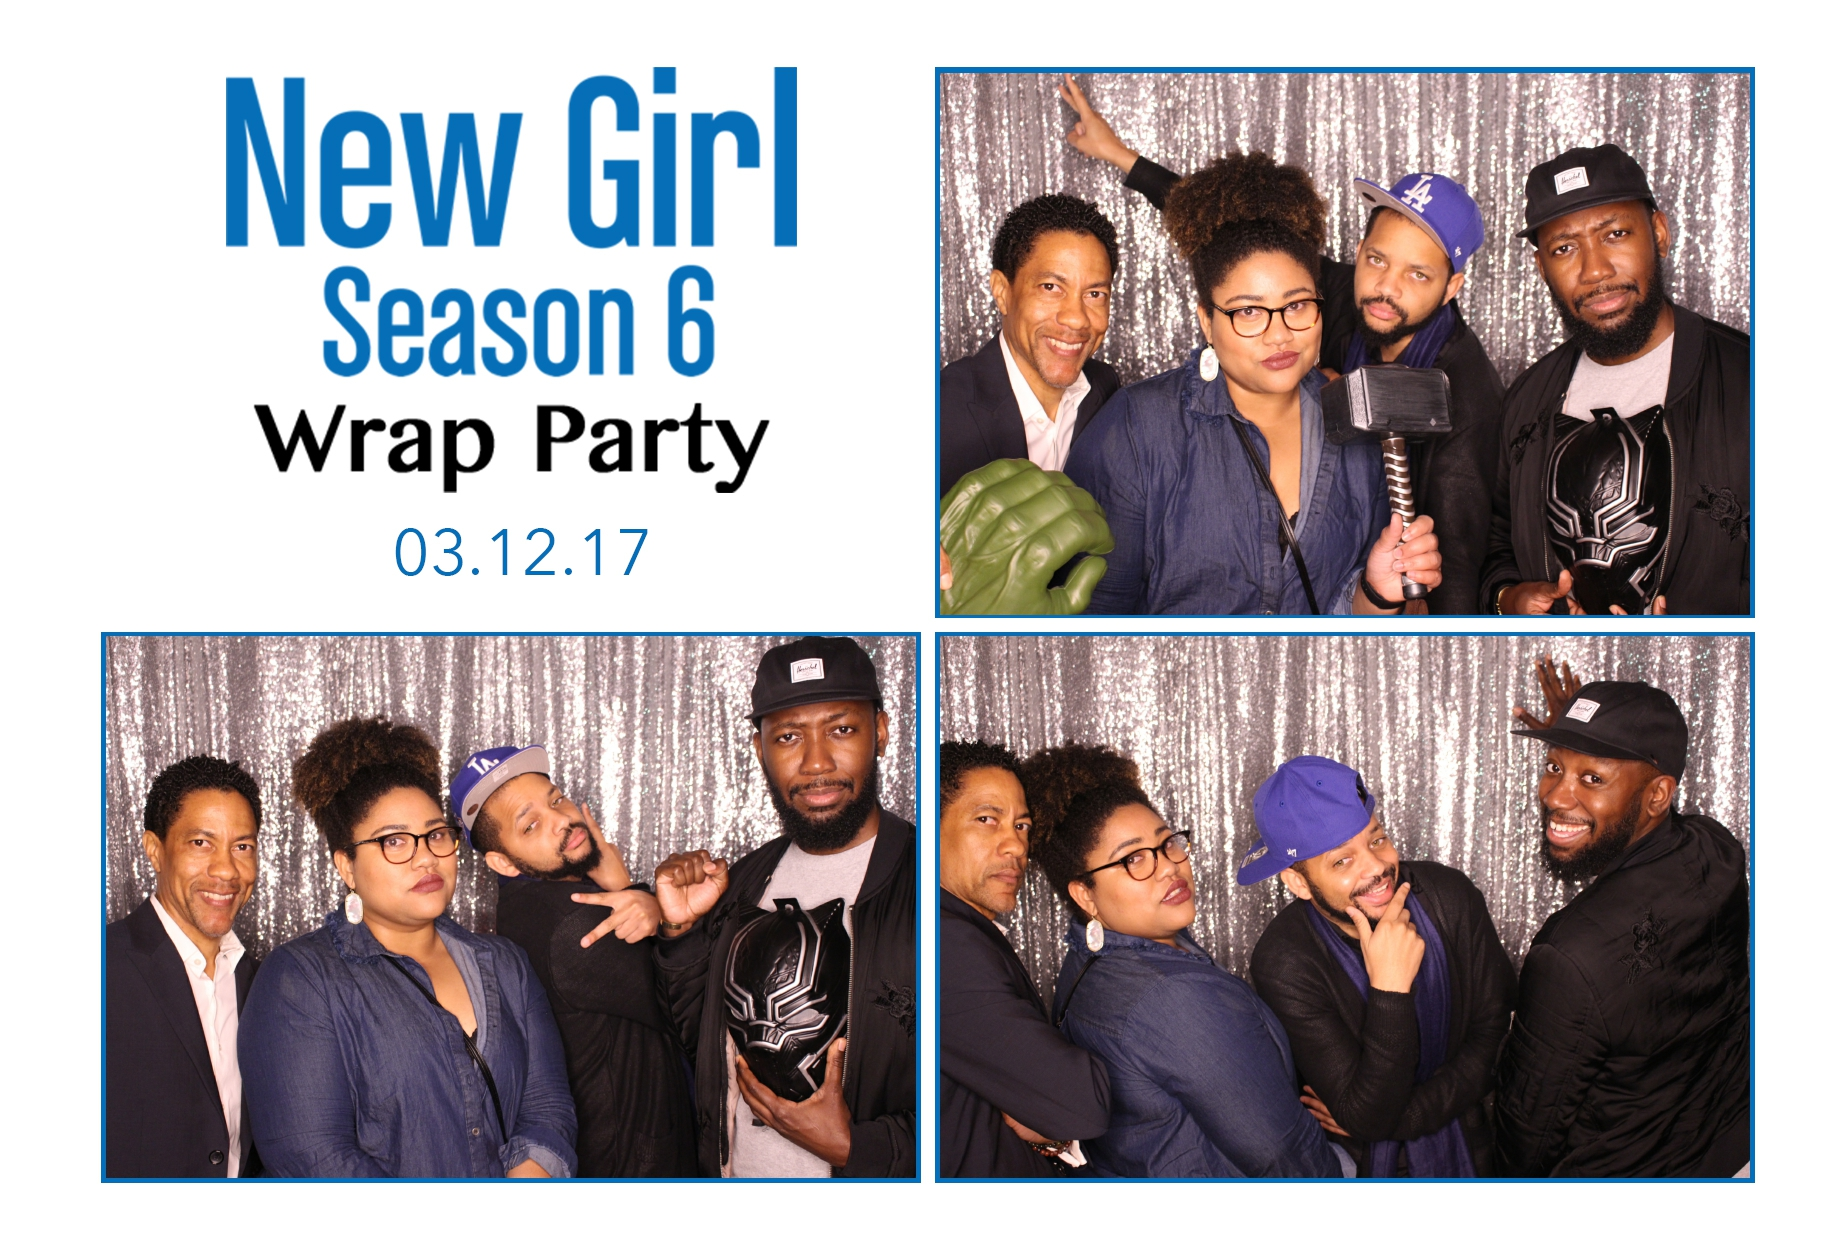 New Girl Season 6 Wrap Party